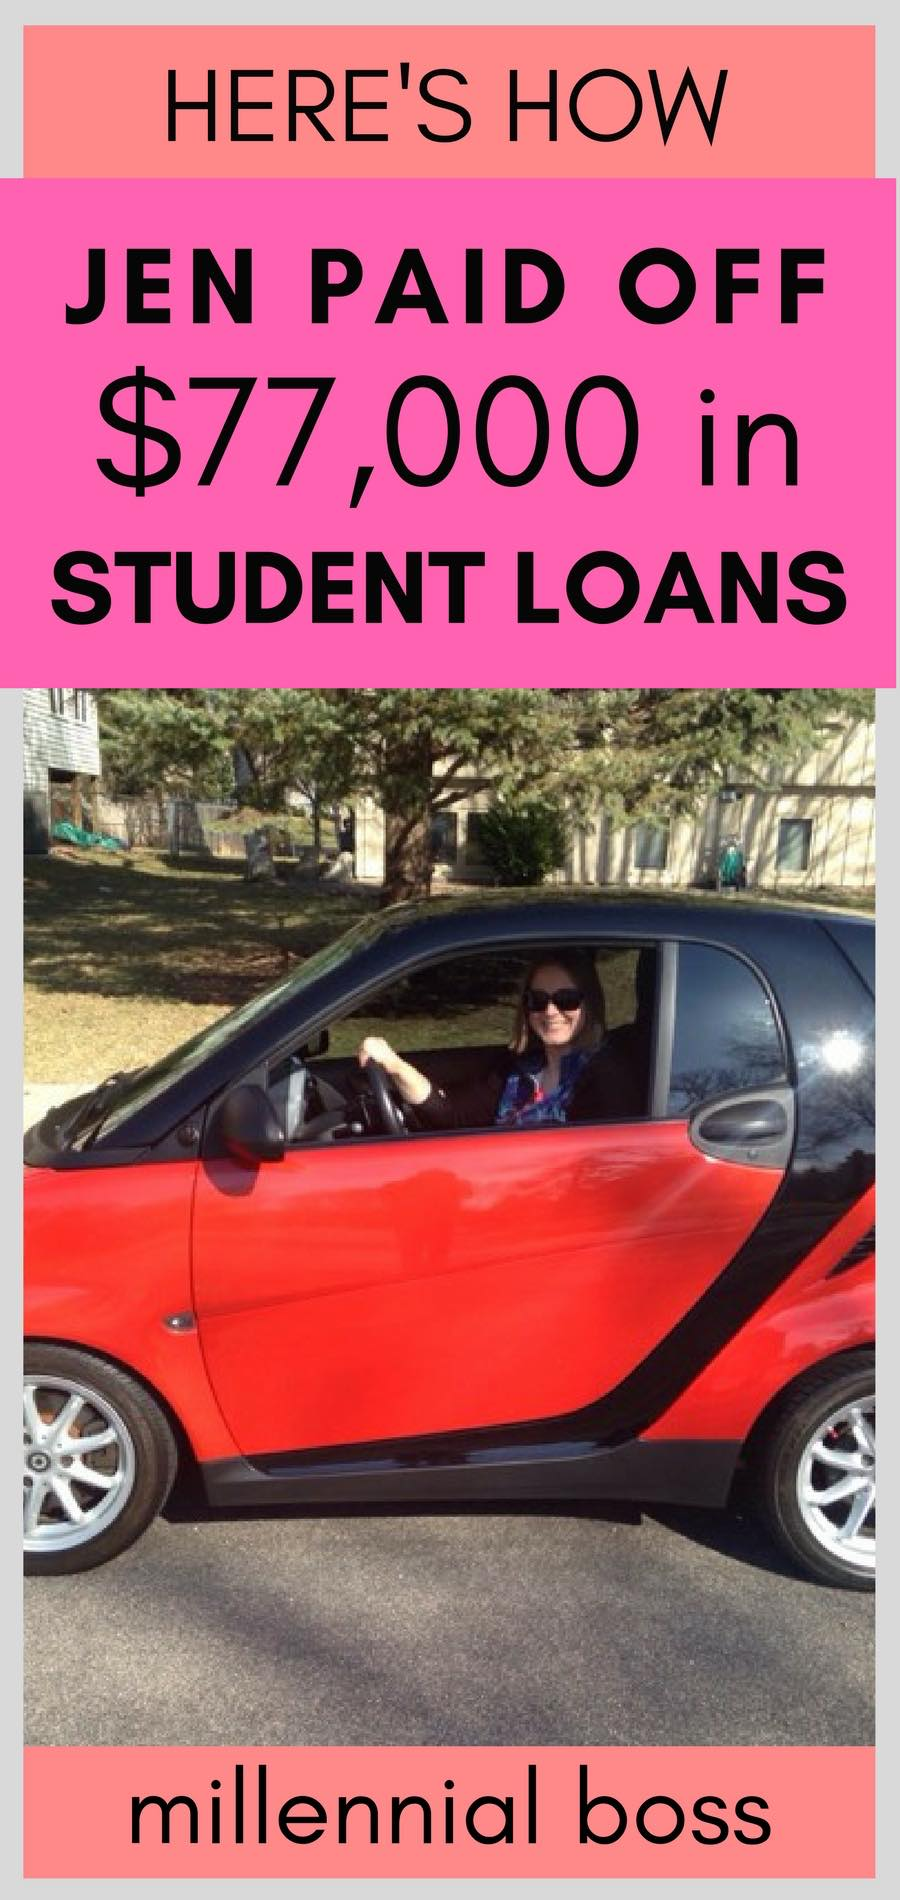 Jen paid off $77,000 in student loans | here are the steps she took to pay off her debt | Student loan payoff story